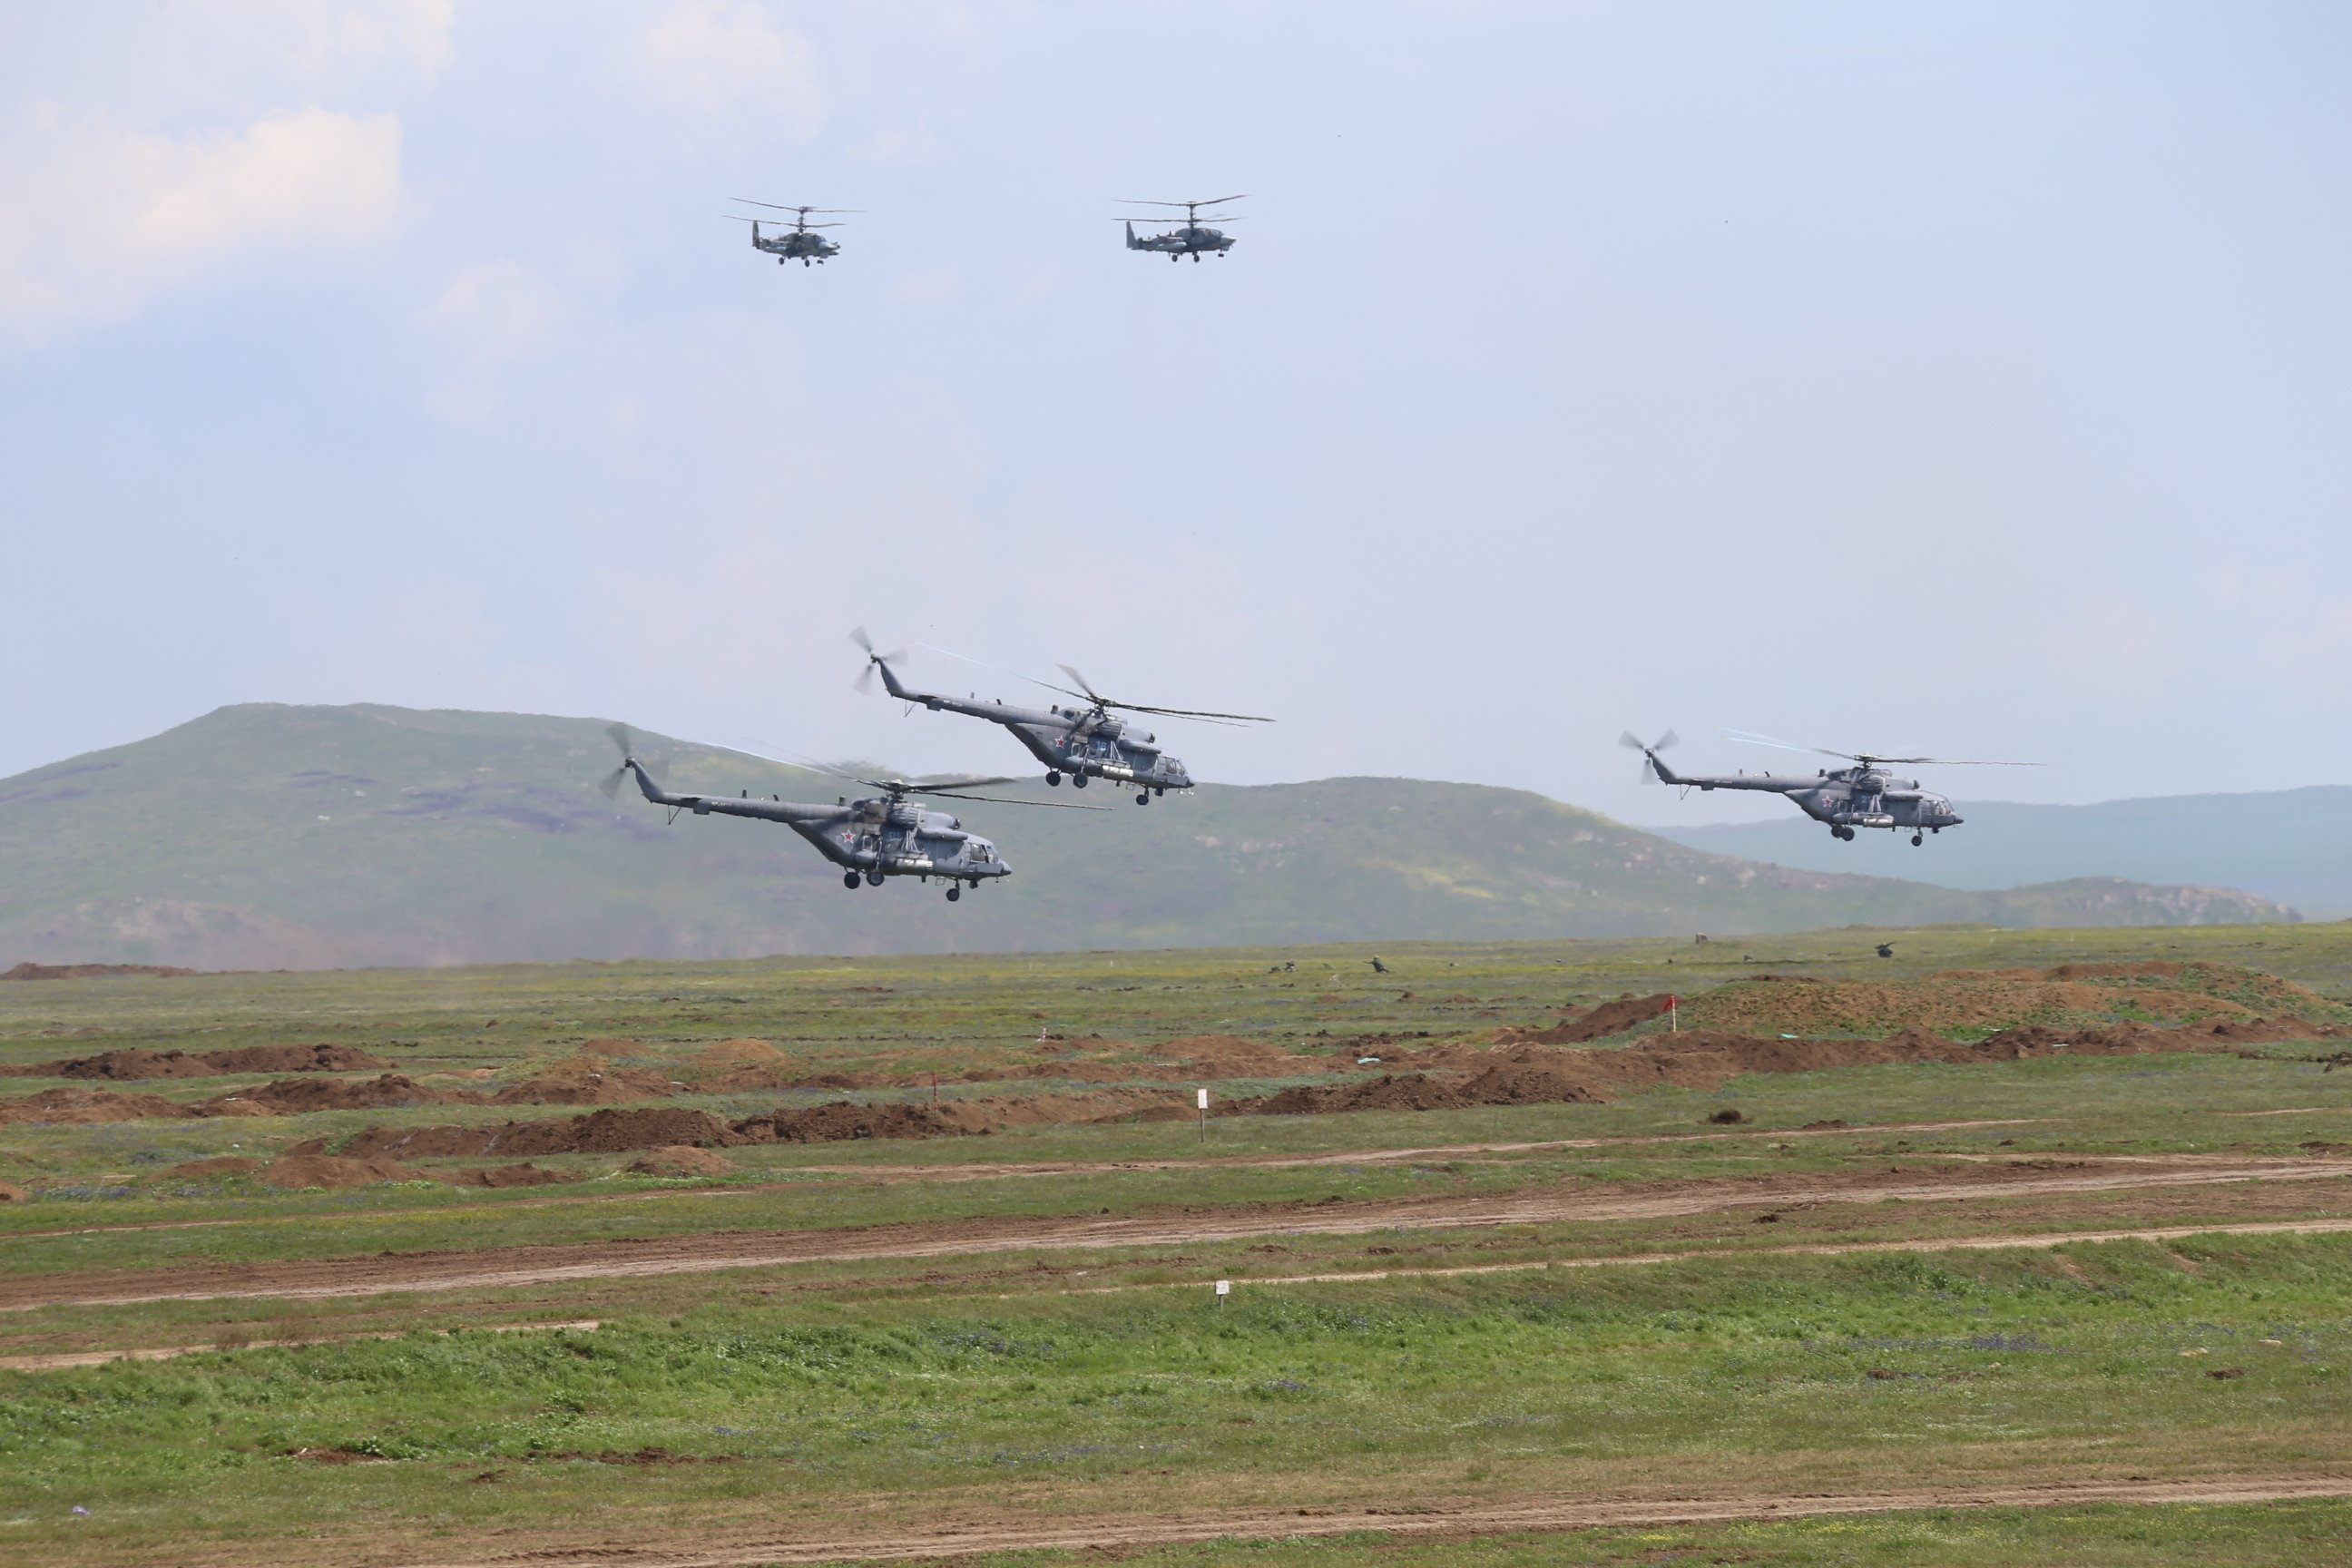 Russian military helicopters taking part in a military drill over the Opuk training ground not far from the town of Kerch, on the Kerch Peninsula in the east of Crimea, in this handout picture released by the Russian Defense Ministry on April 22, 2021. (Photo by Vadim Savitsky / Russian Defense Ministry / AFP)